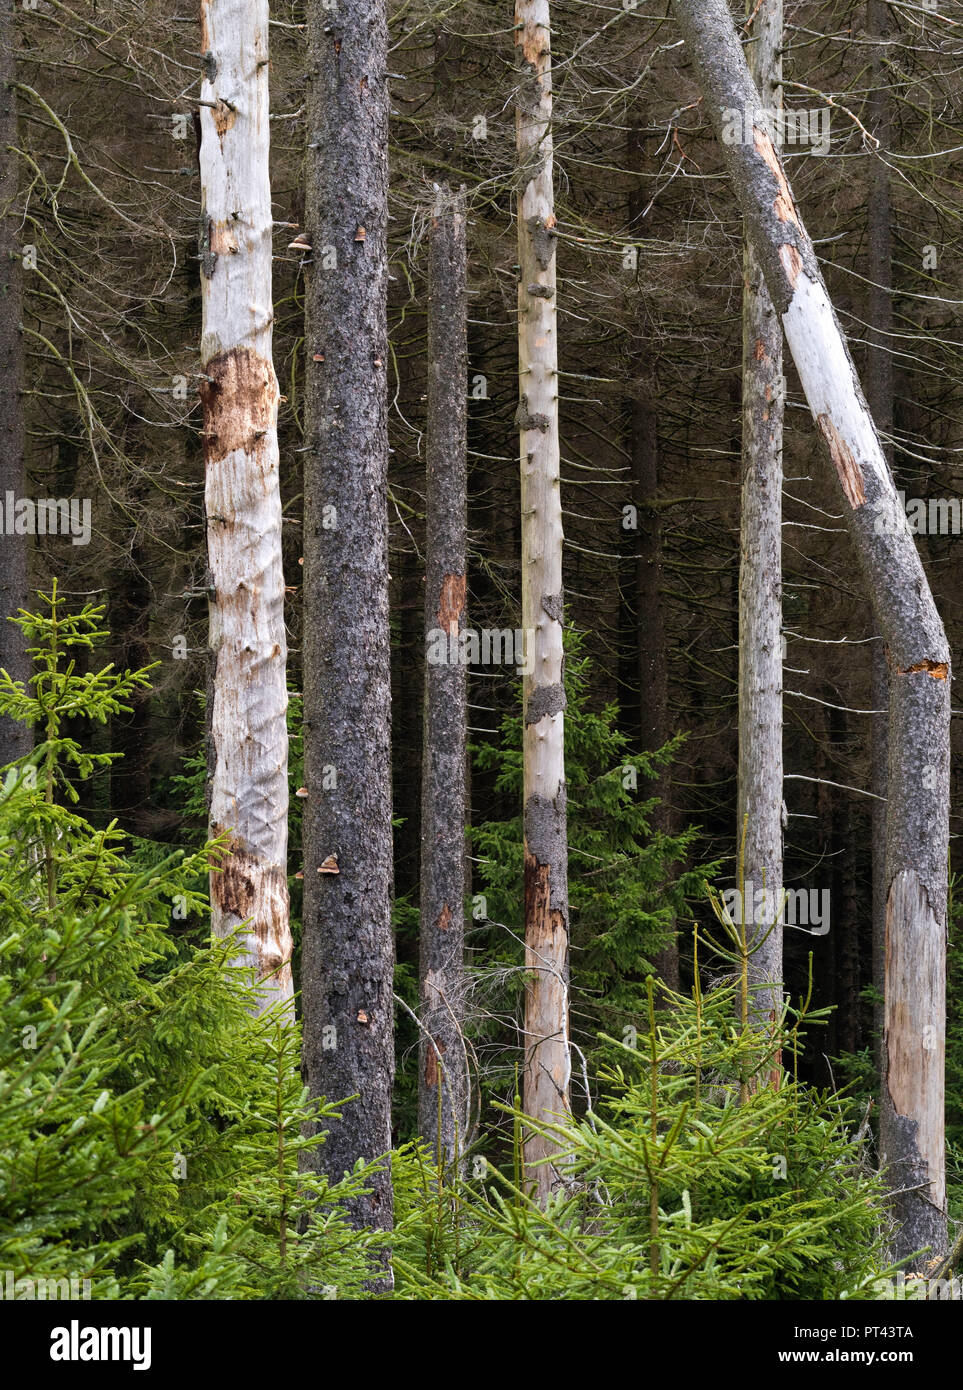 Europe, Germany, Saxony-Anhalt, Harz National Park, spruces infested with bark beetles on the Brockenbett - Stock Image